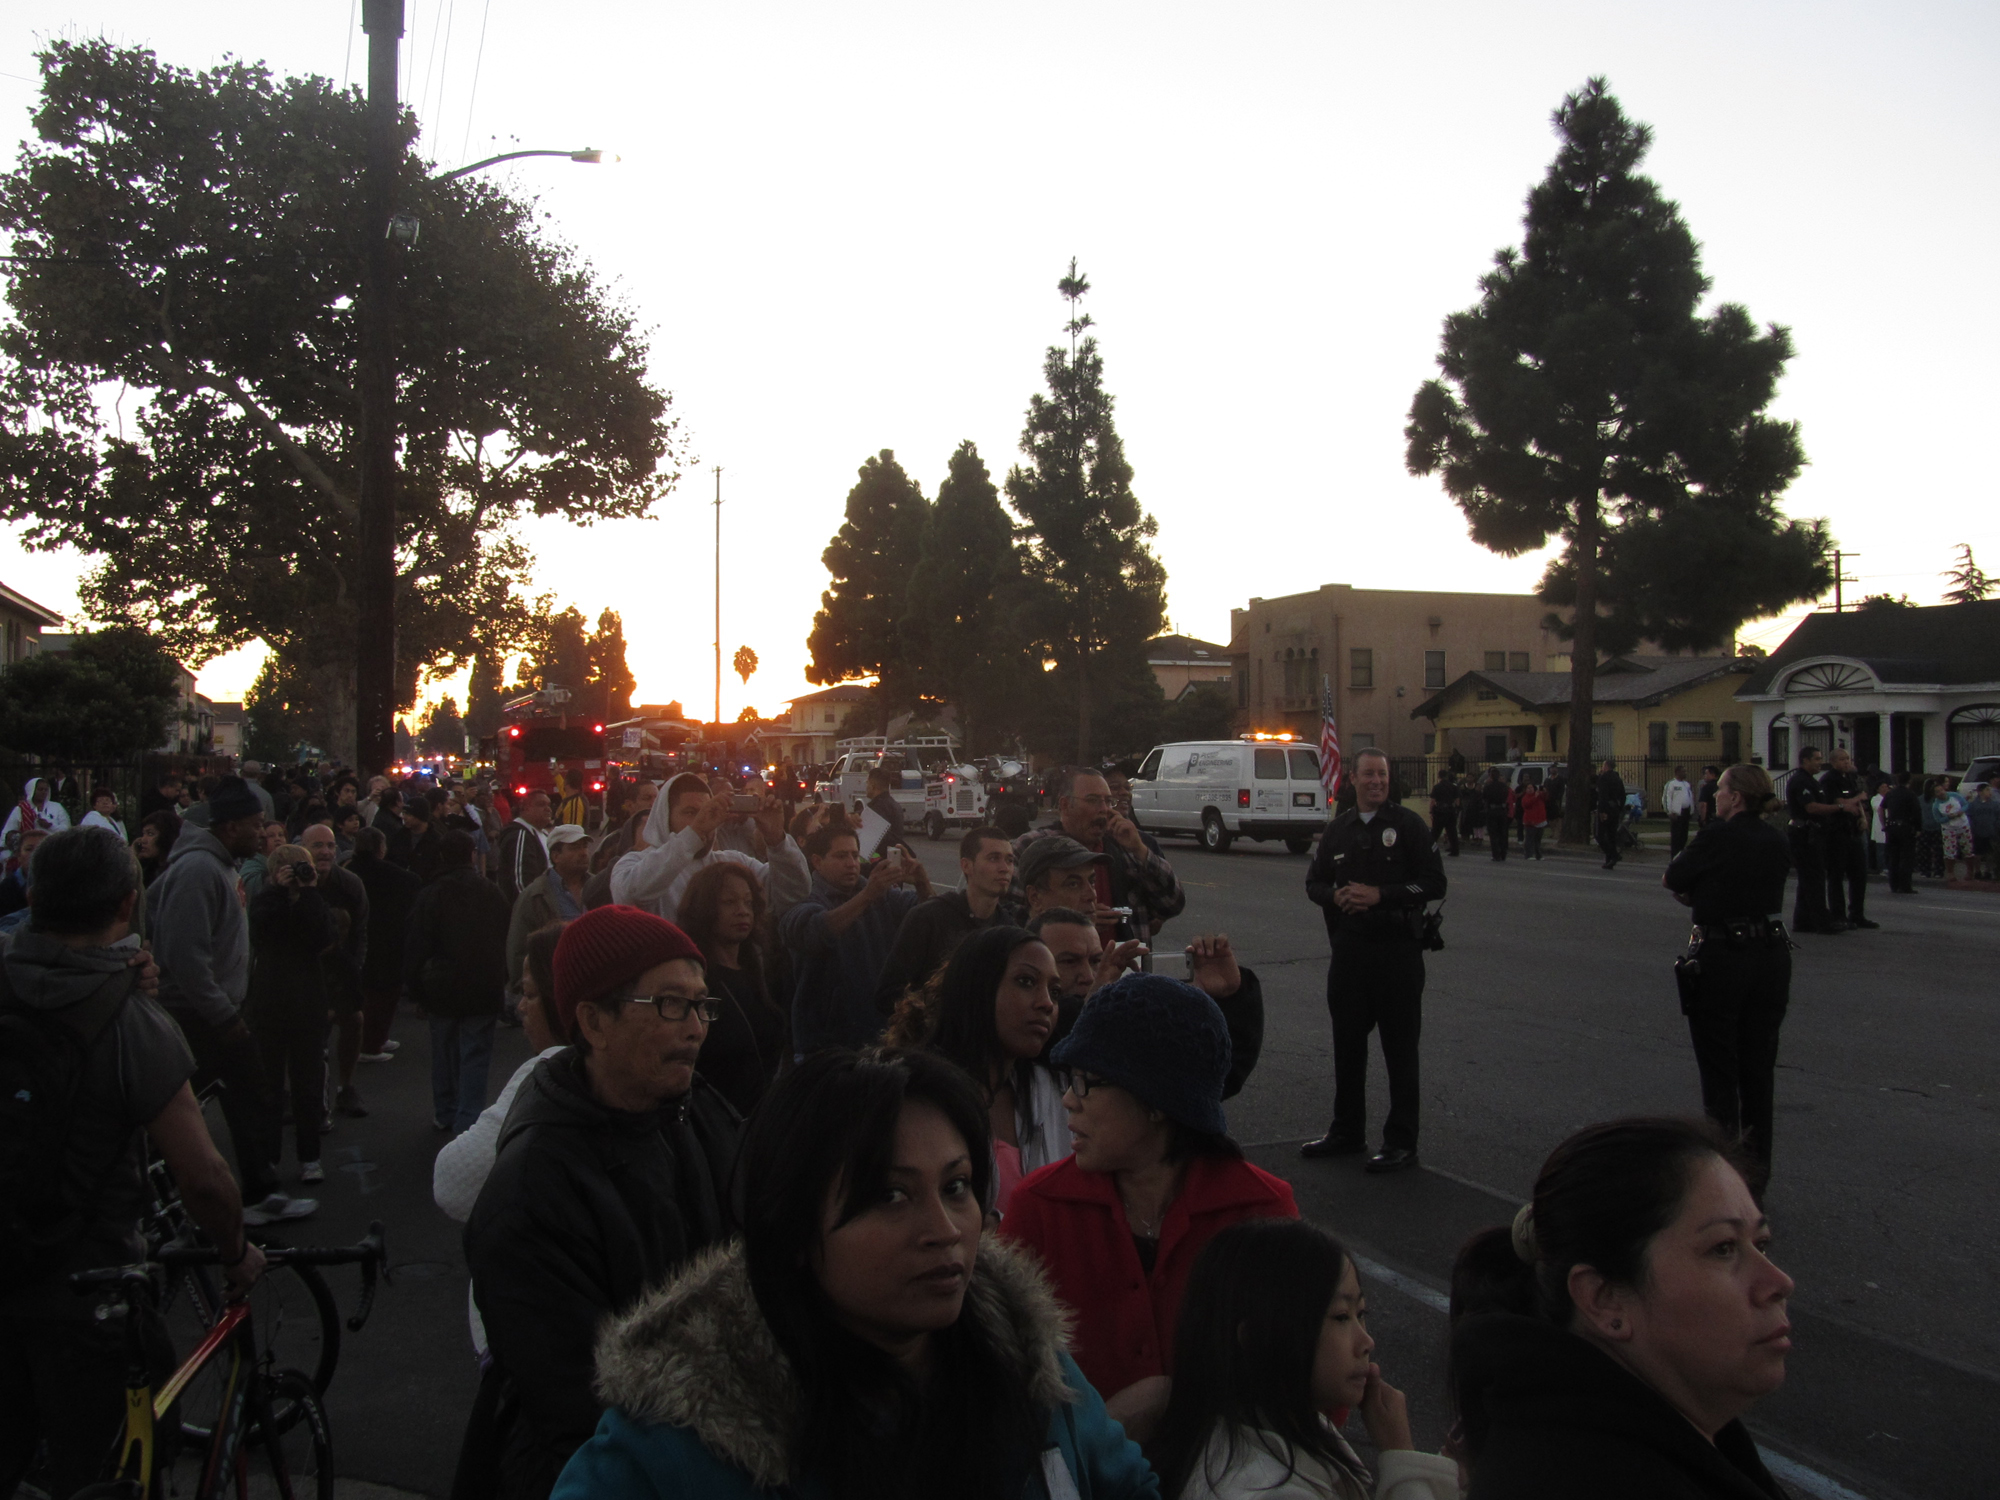 Big Crowds for Shuttle Endeavour